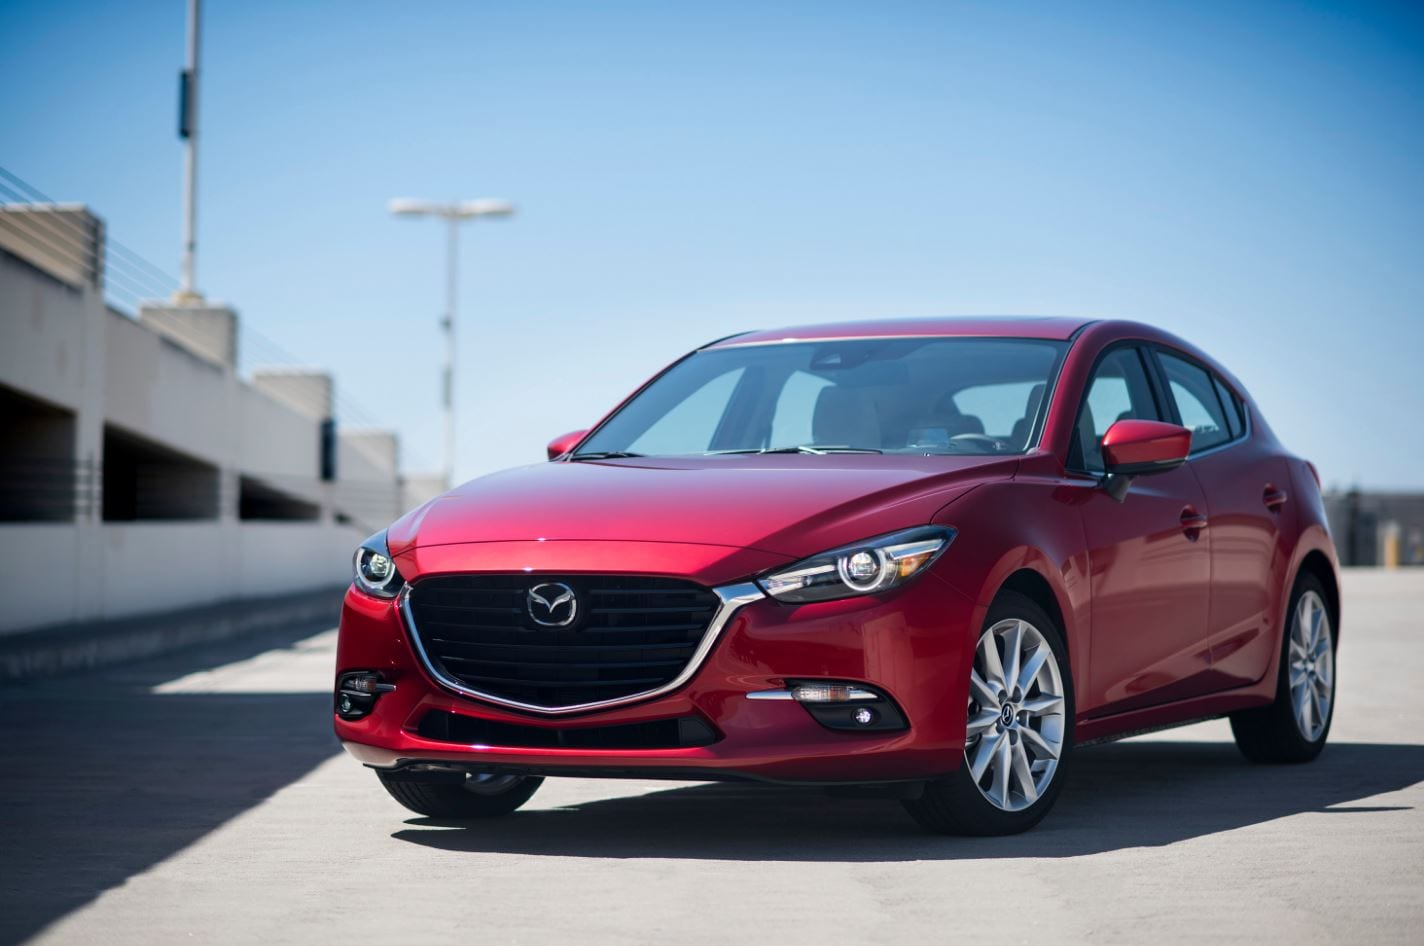 2017 Mazda 3 Receives Sporty Upgrades